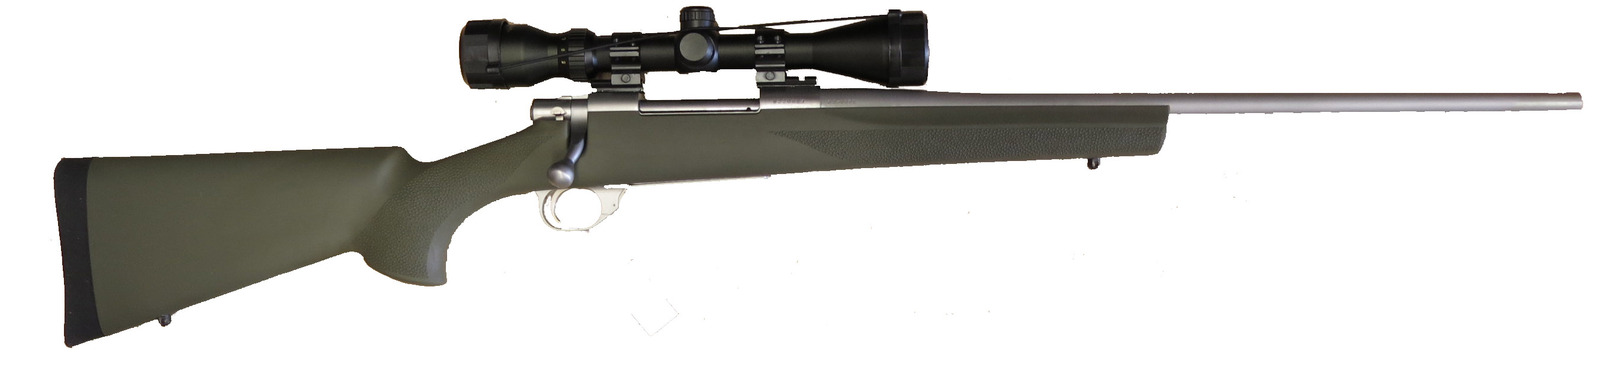 Gunworks Ltd Howa 1500 Rifle 223 243 6 5x55 7mm 08